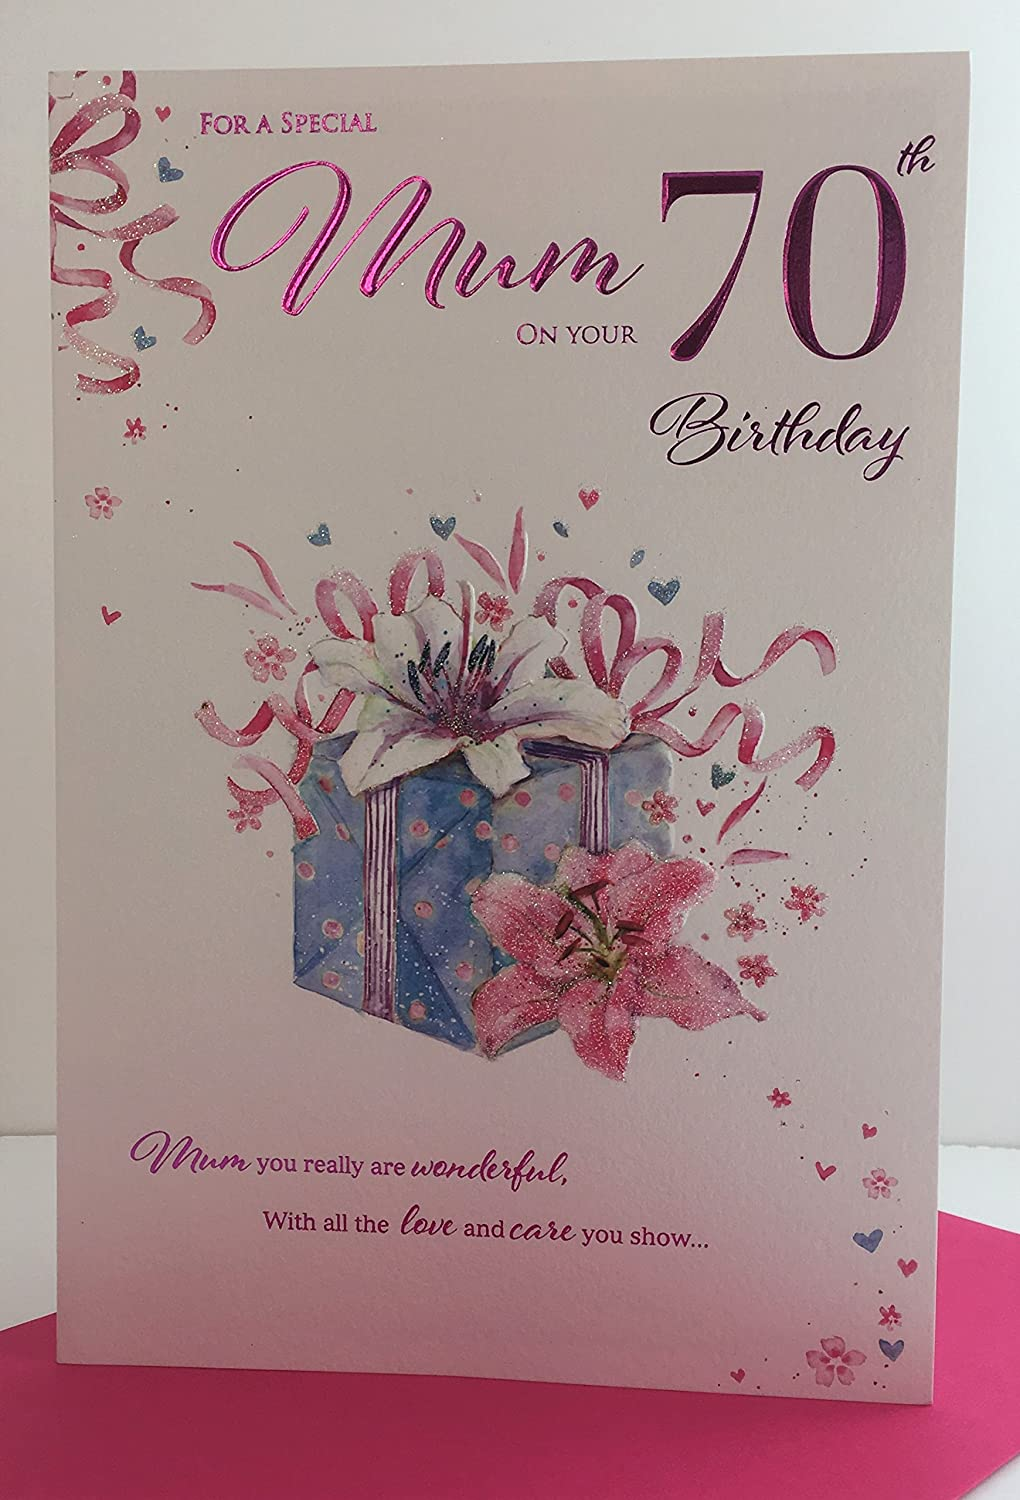 Mum Happy Birthday Card Loving Verse On Paper Insert Feesten Speciale Gelegenheden